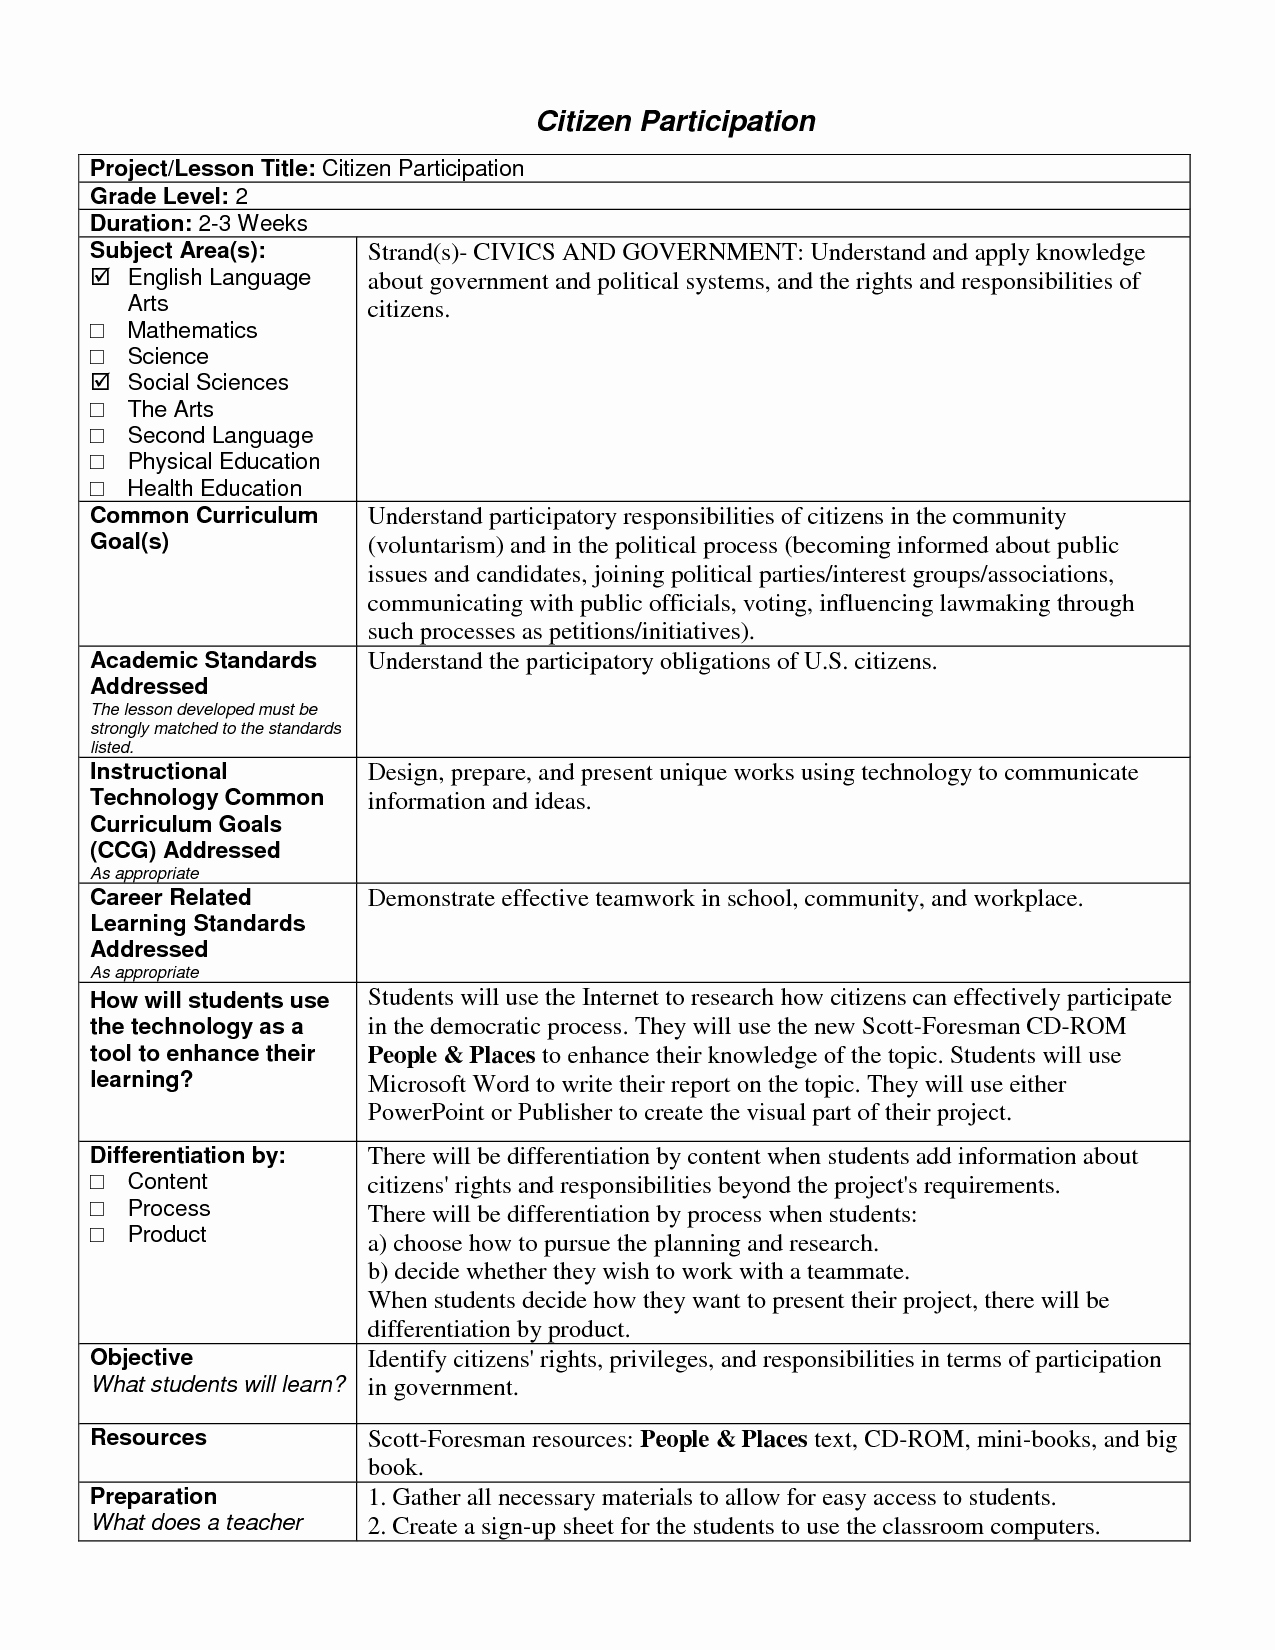 Florida Lesson Plan Template Luxury Civics Lesson Plan Templates Florida Standards